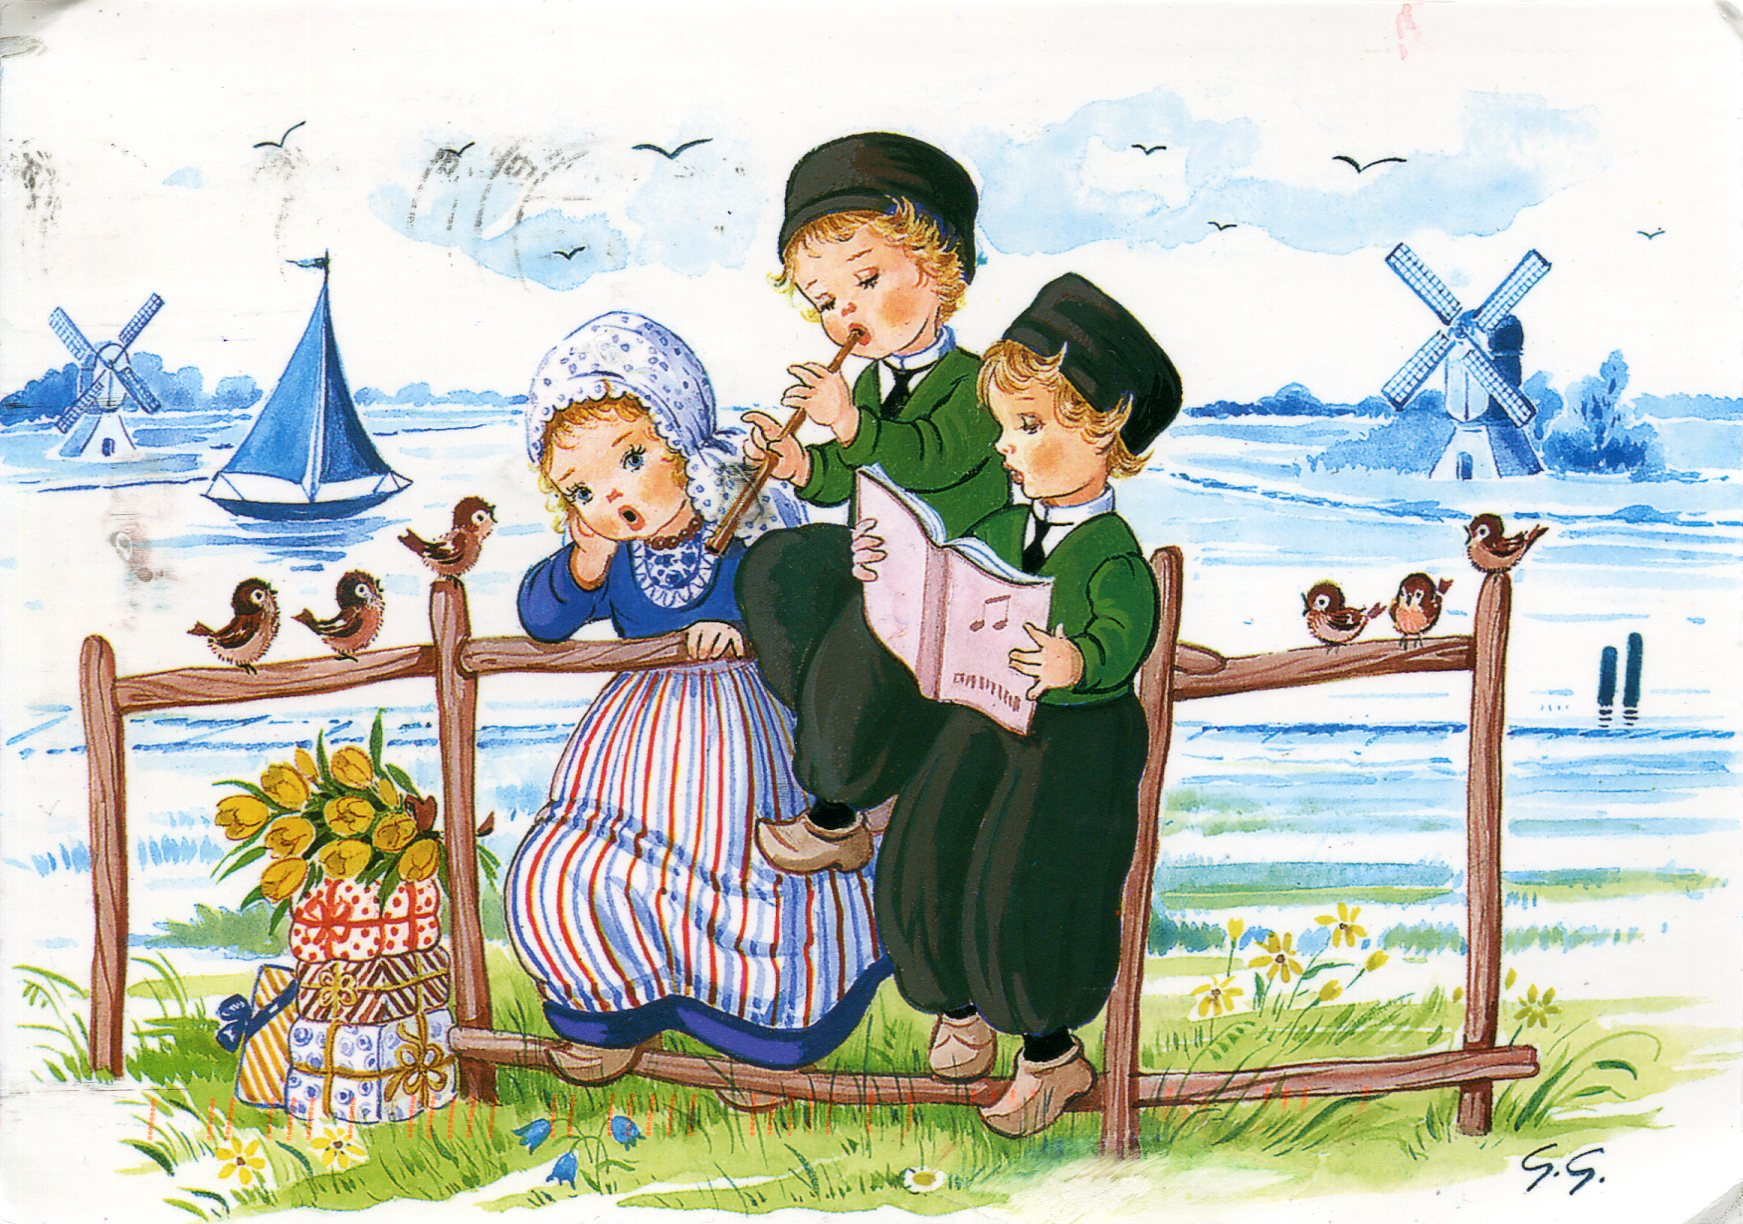 Dutch children playing music remembering letters and for Paintings of toddlers